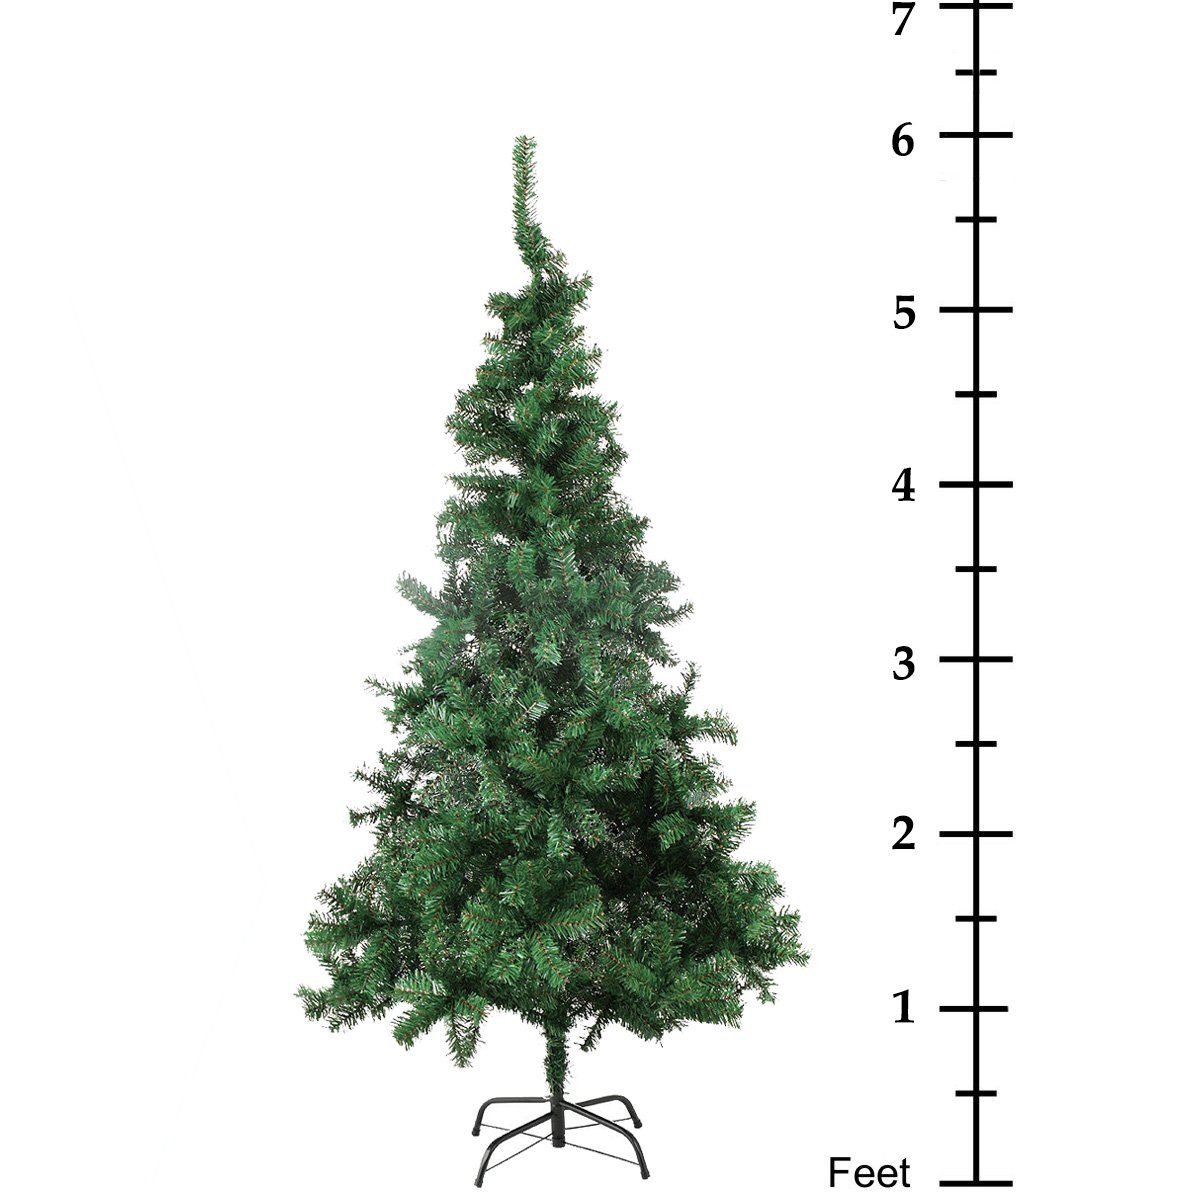 Fake Christmas Tree.6 Artificial Christmas Tree Unlit Amazingforless 6ft Fake Christmas Pine Tree 660 Tips Green 6 Foot Christmas Tree With Plastic Base For Holidays